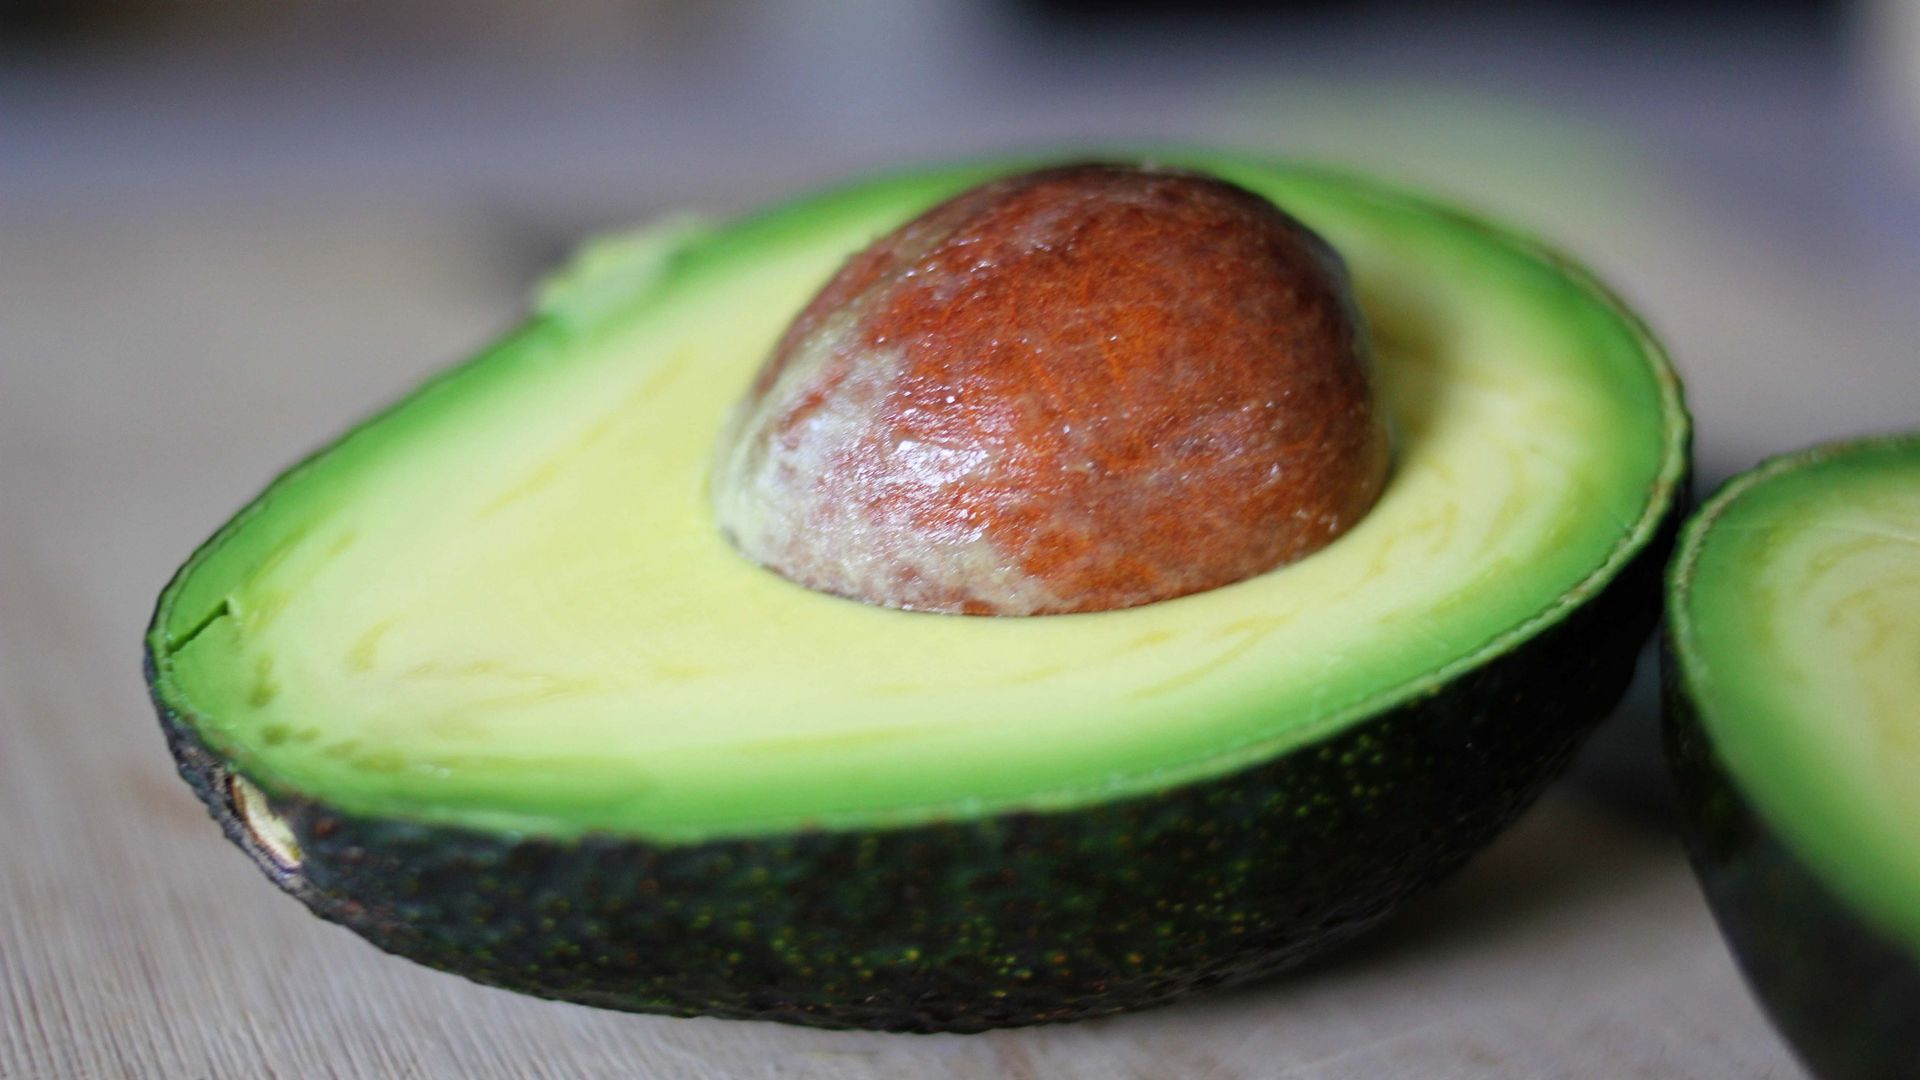 Avocado full hd 1080p wallpaper